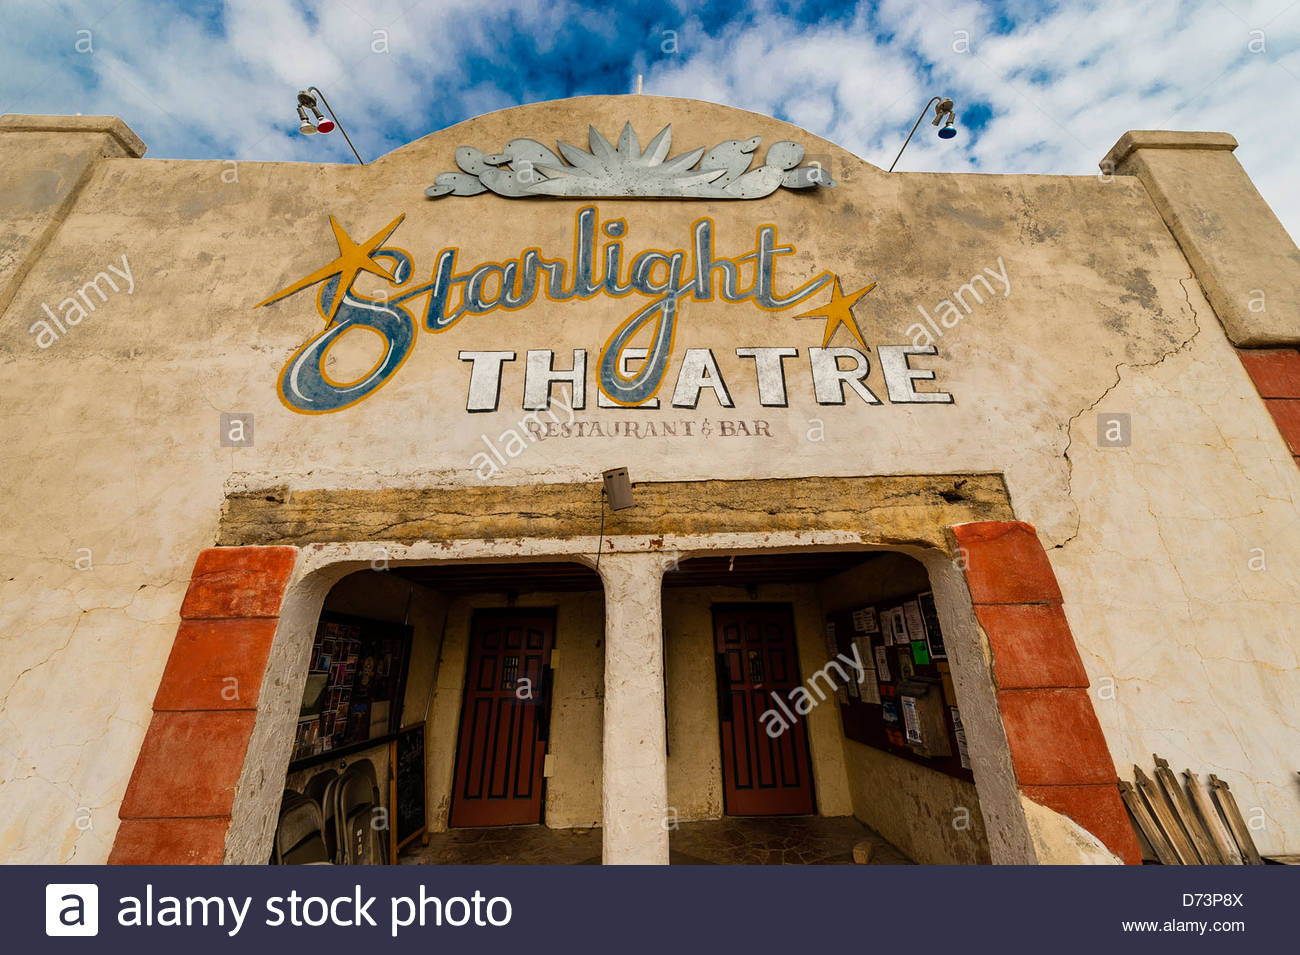 Starlight Theatre Restaurant and Bar, Terlingua Ghosttown, near Big Bend National Park, Texas USA. - Stock Image